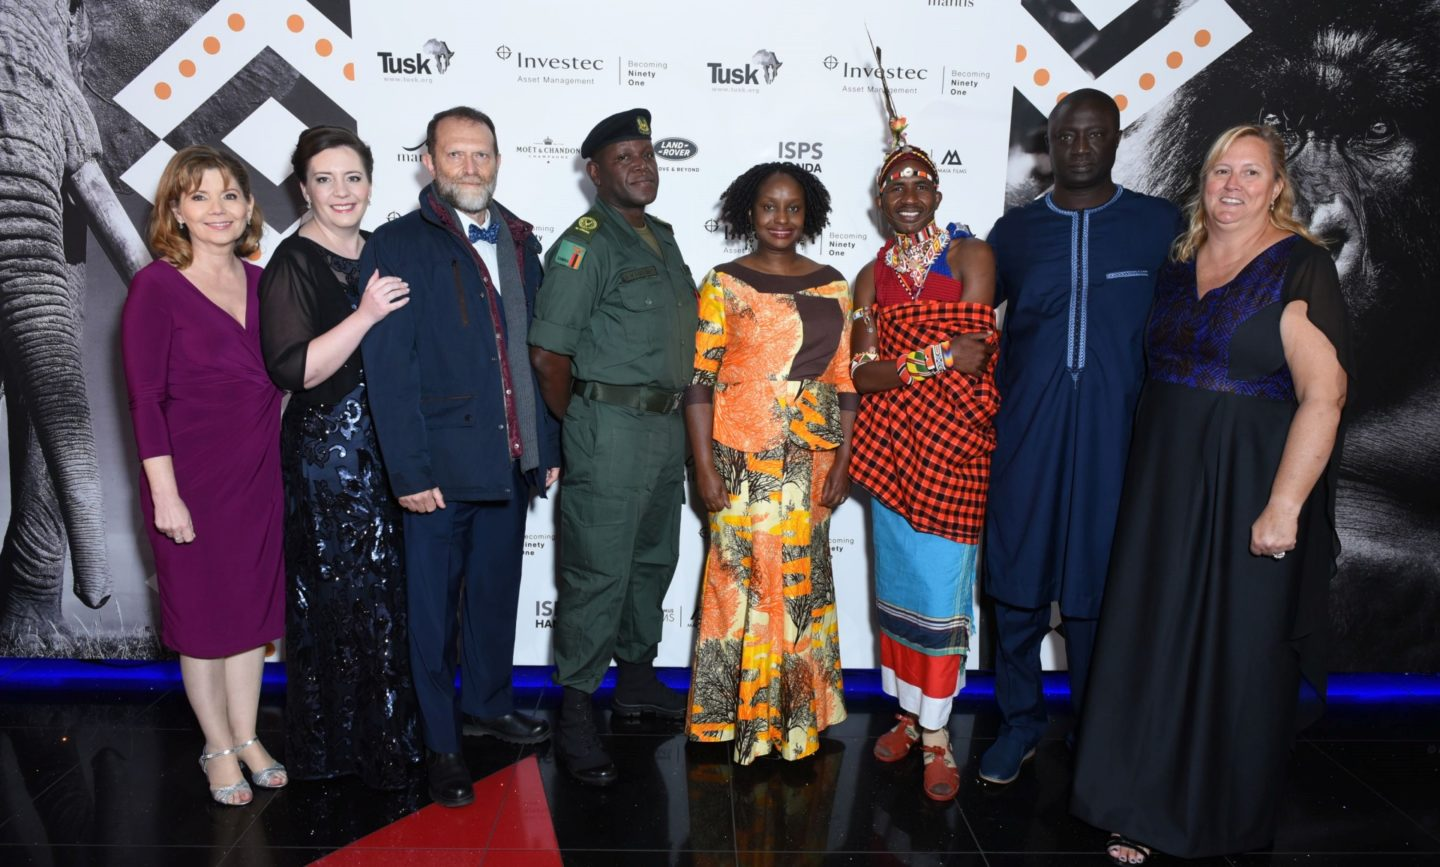 Tusk Conservation Awards 2019 Winners & Finalists